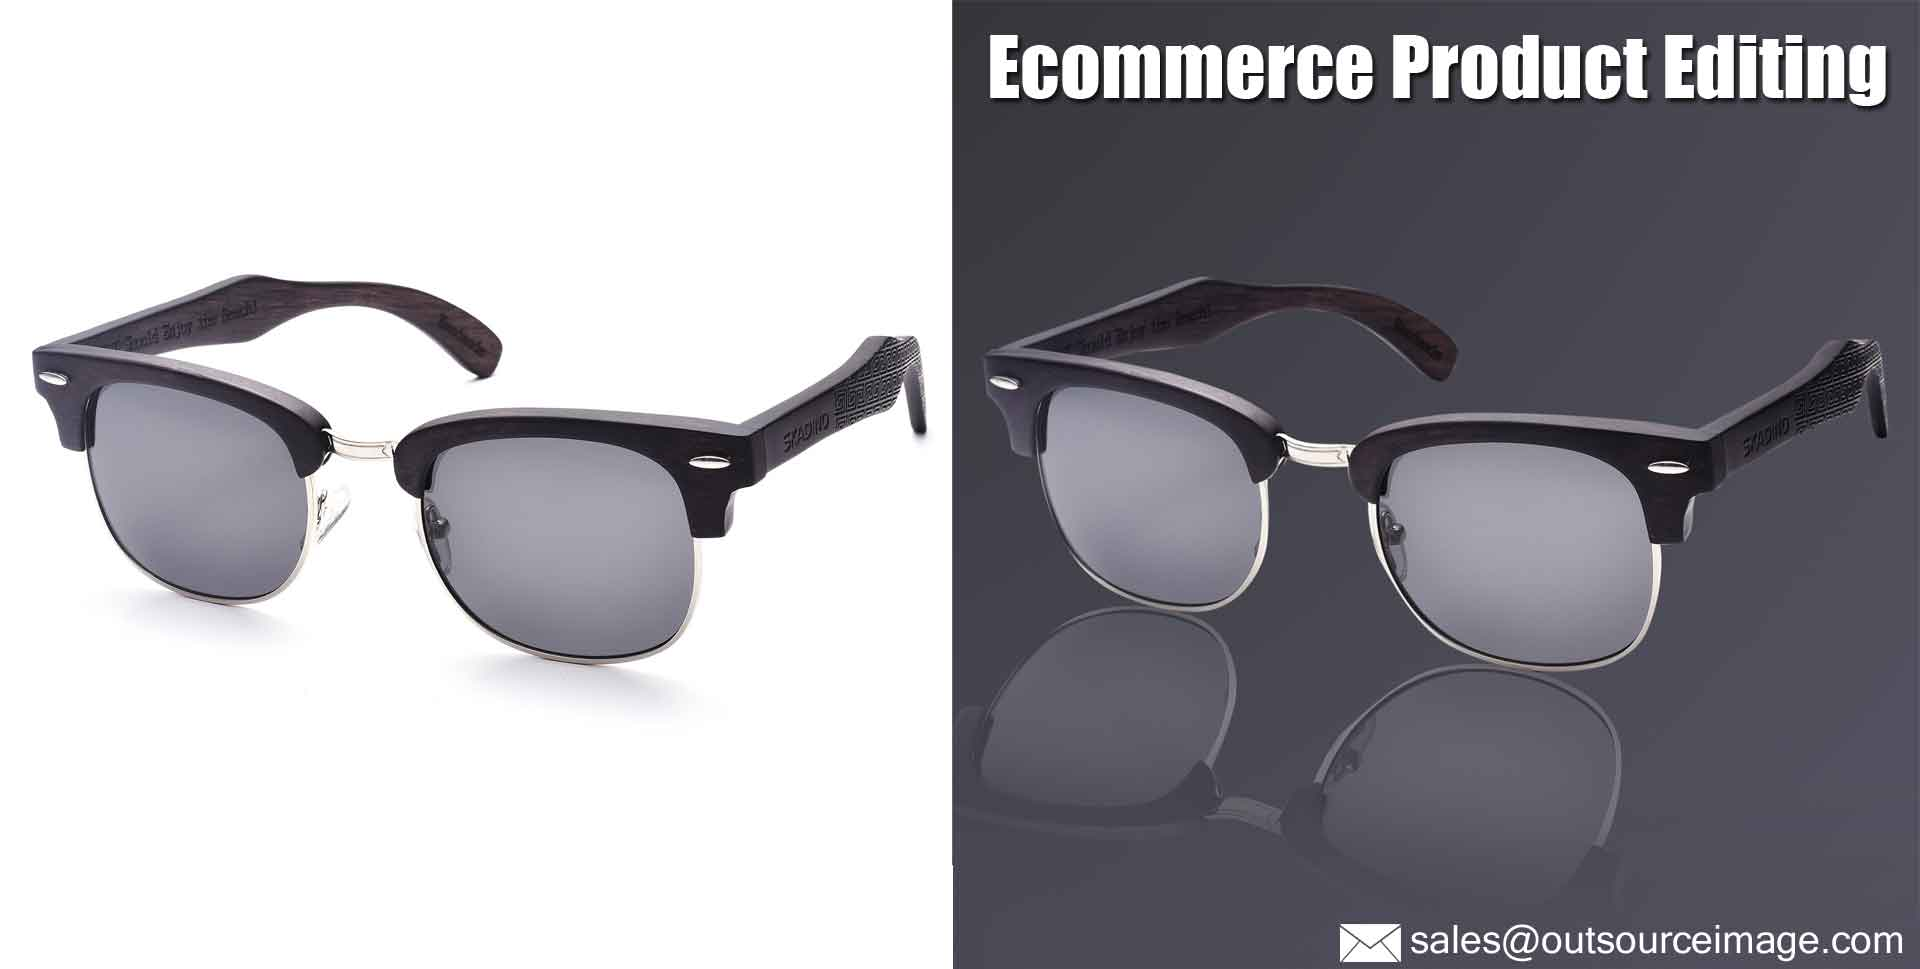 E-commerce product image editing | Product Editing Service for Online Stores